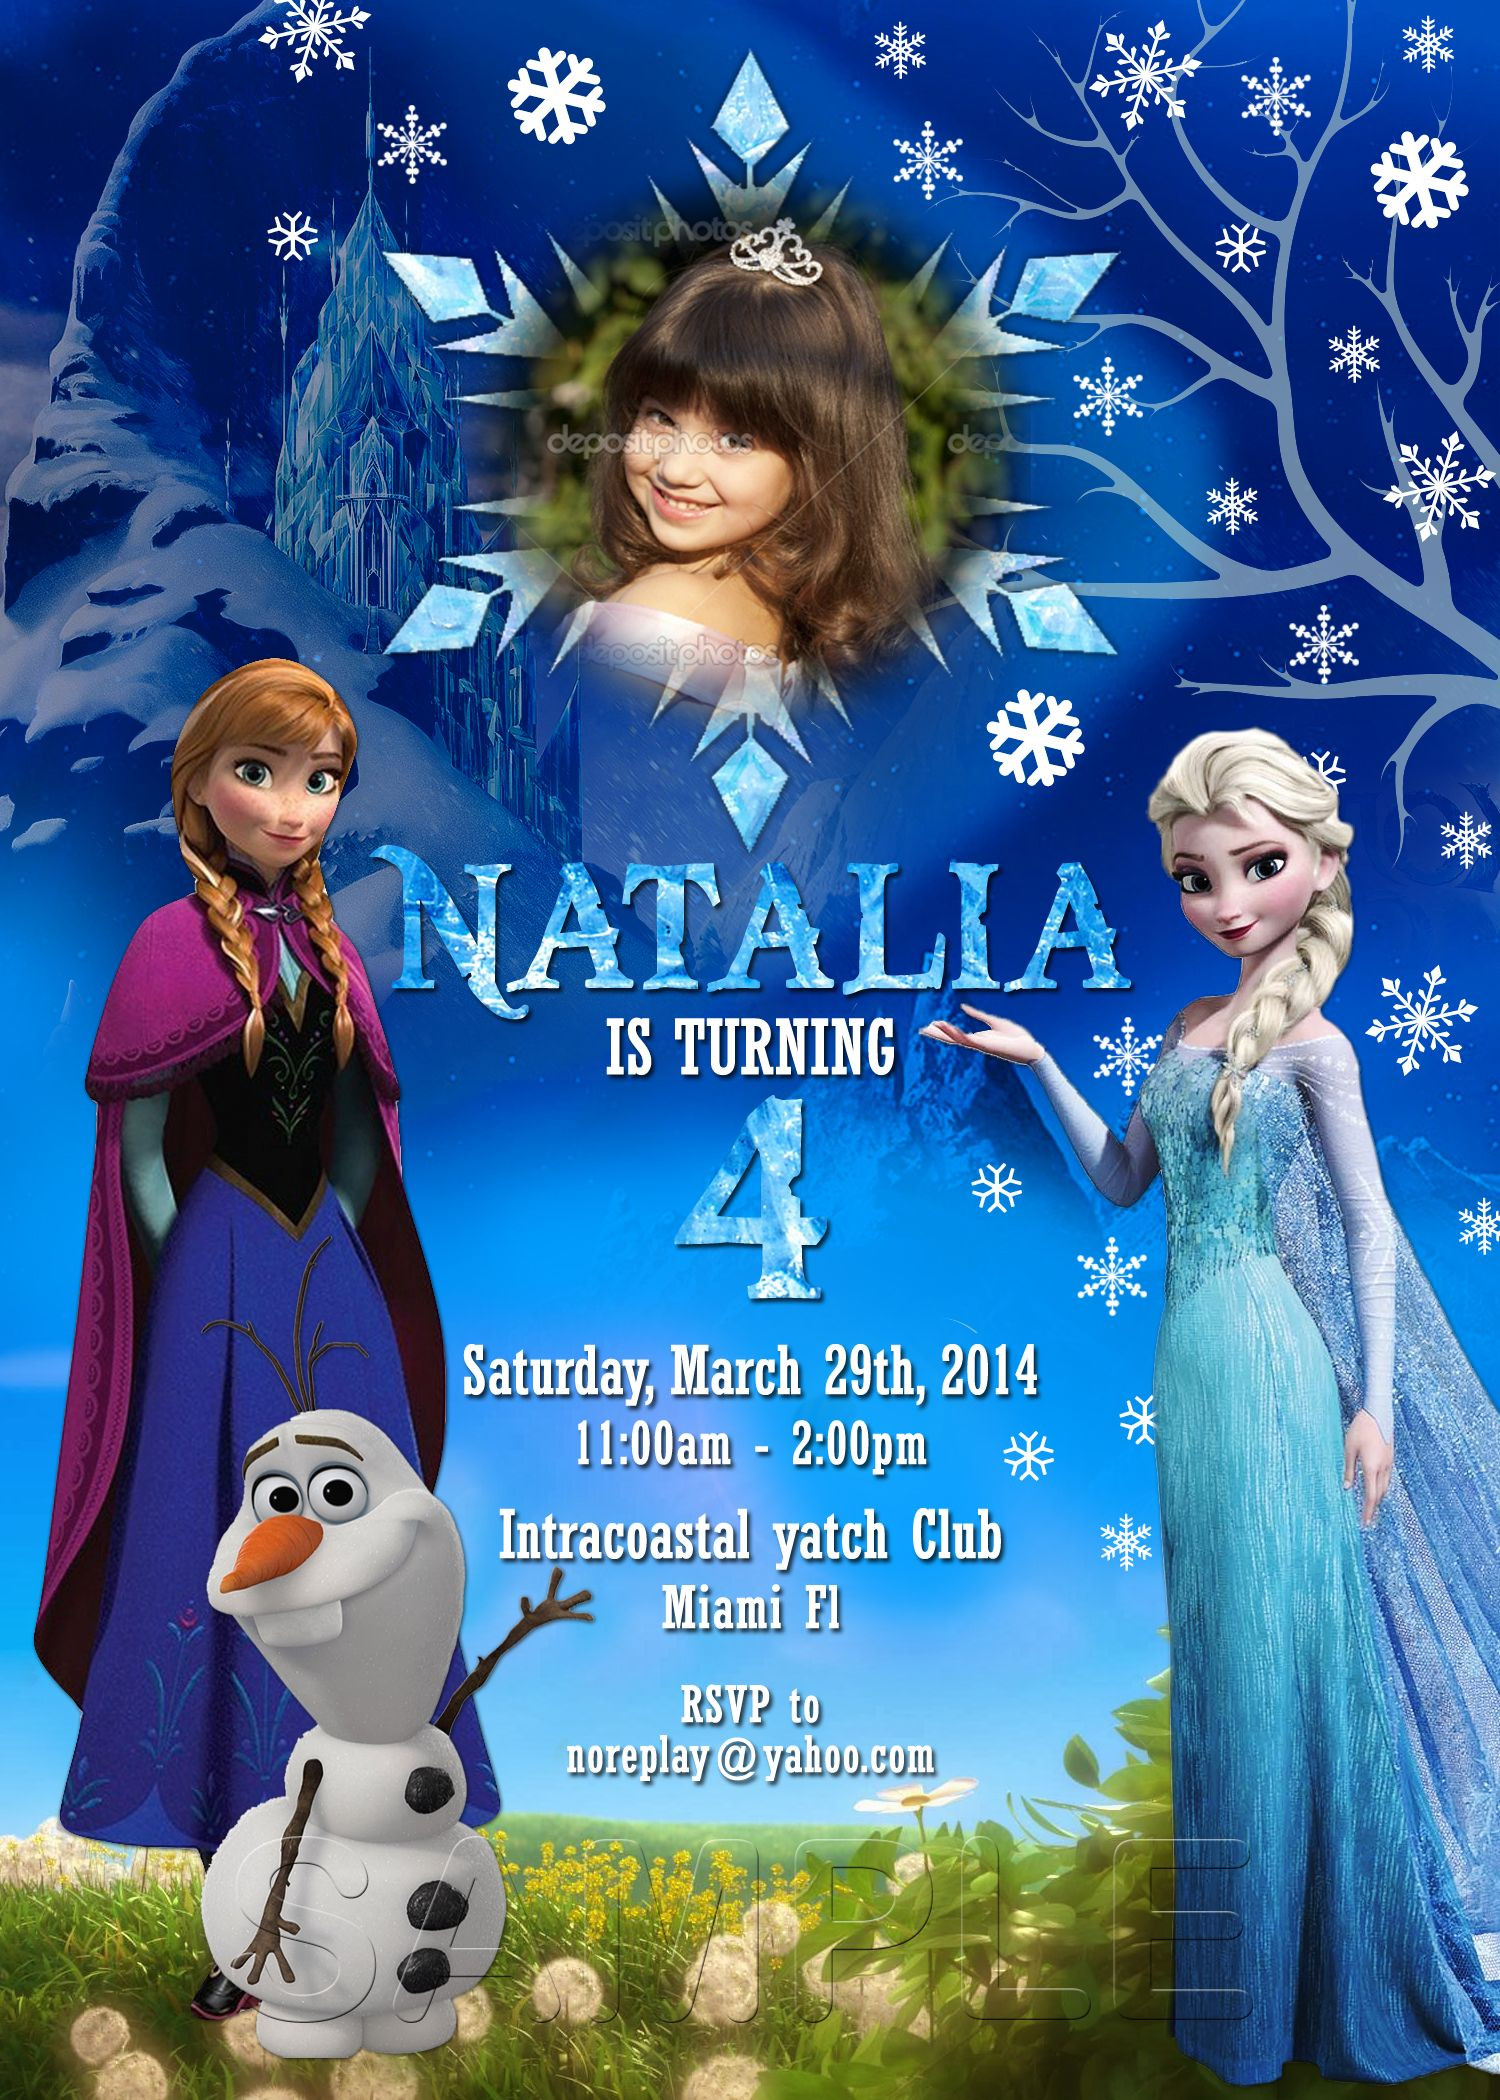 Frozen Invitations Printable Free Disney Frozen Birthday Frozen Invitation Frozen Party with